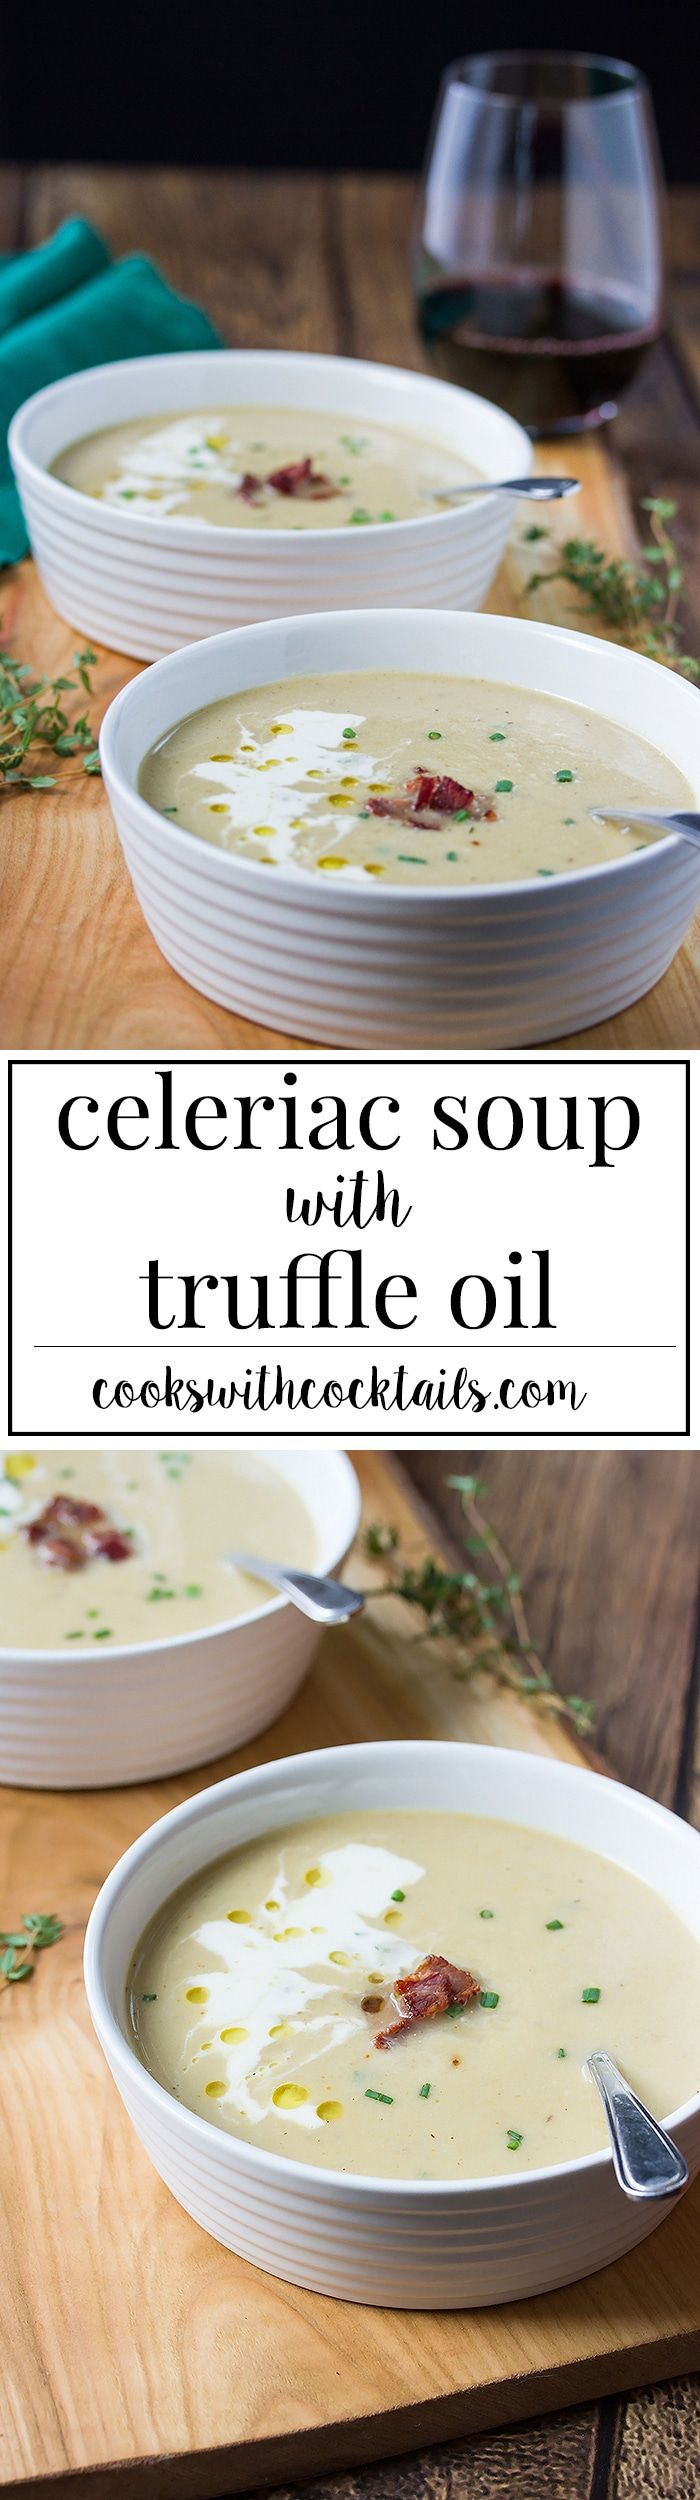 Easy and Healthy Celeriac Soup with Gruyere & Truffle Oil - Cooks With ...